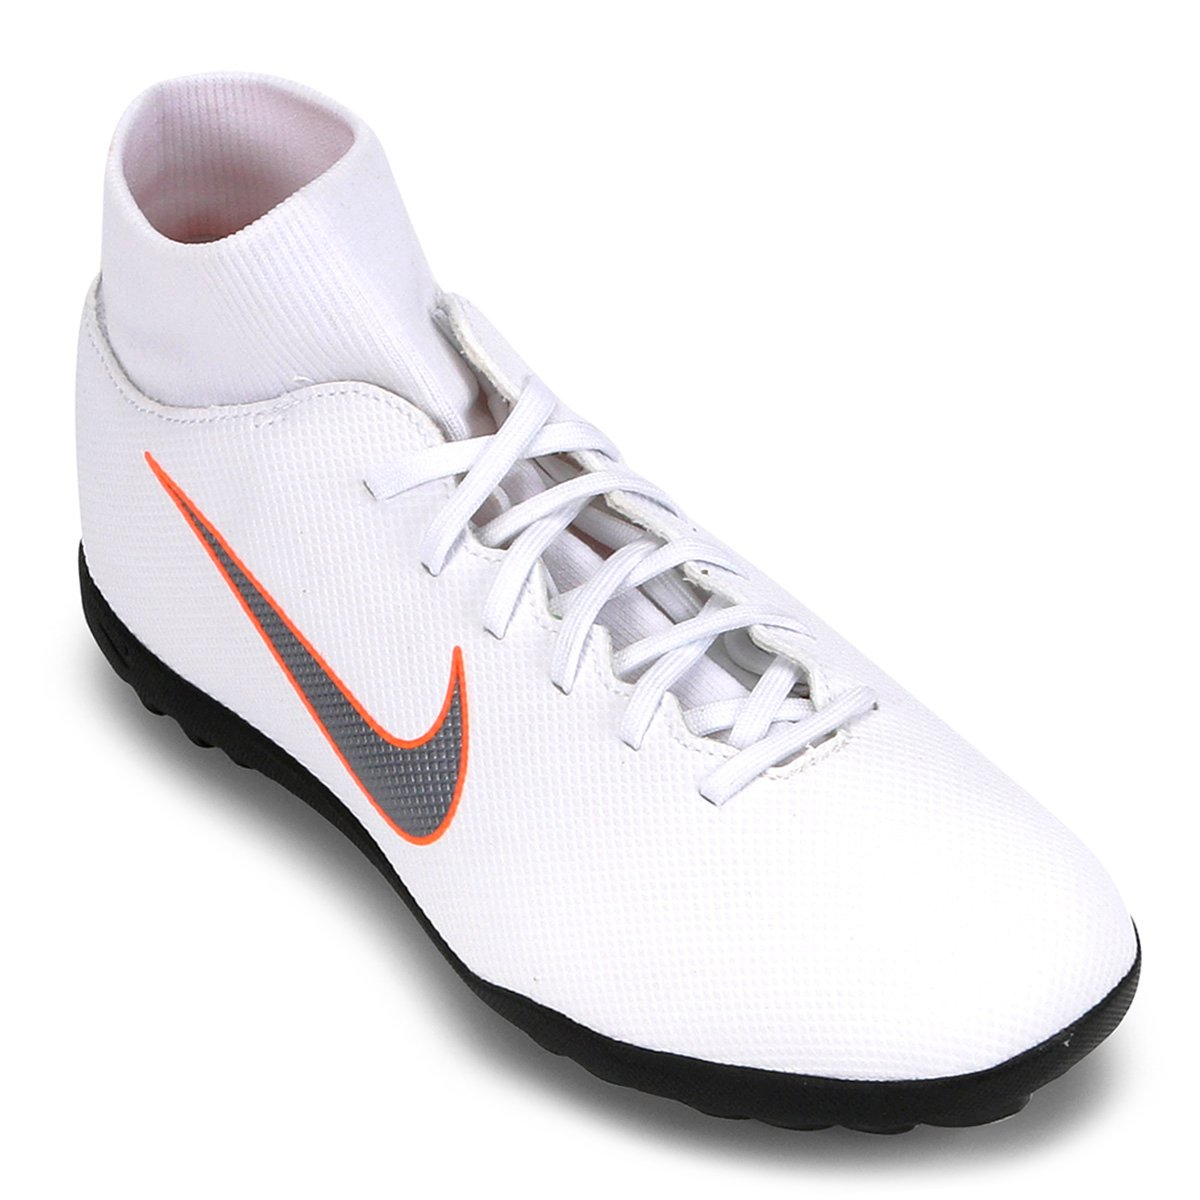 549fb1b768 Chuteira Society Nike Mercurial Superfly 6 Club - Branco e Cinza ...